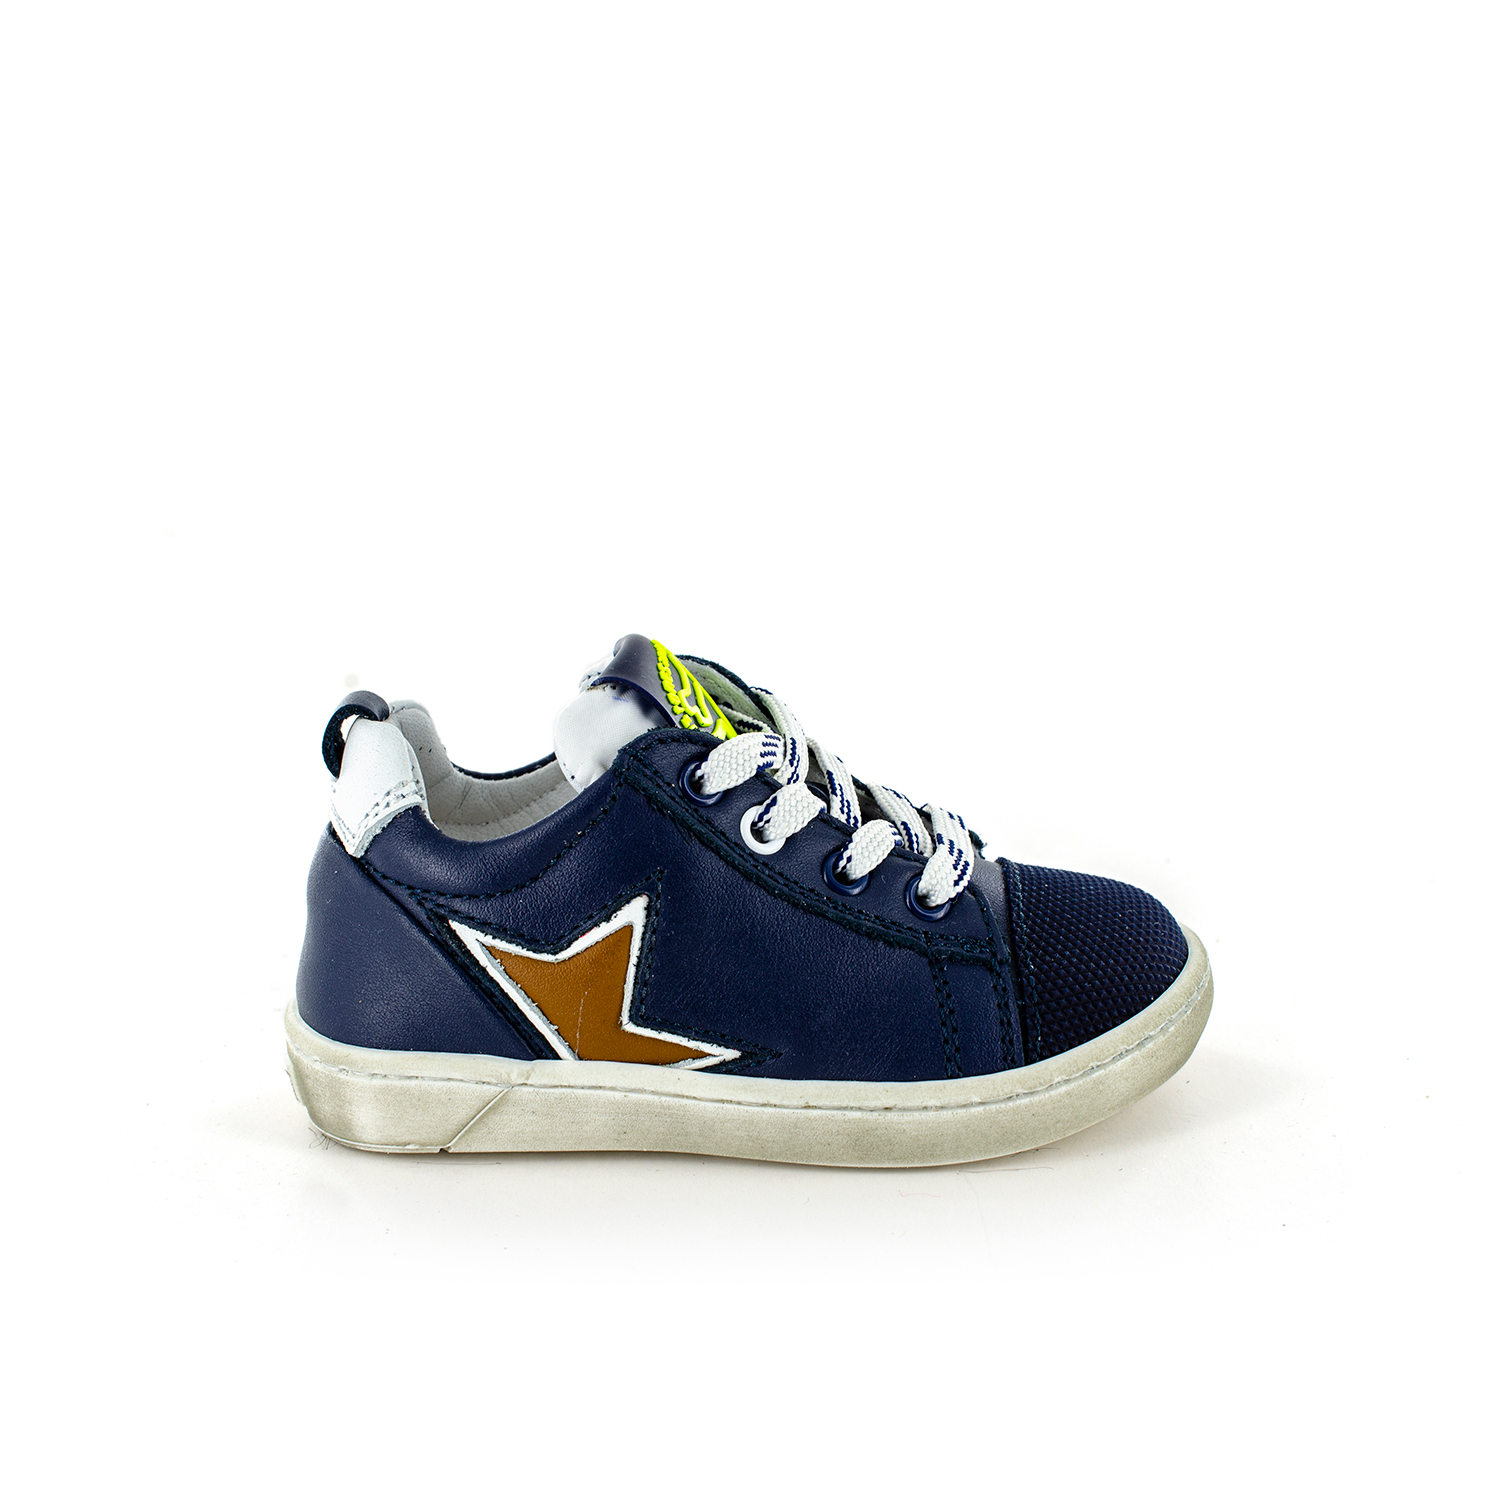 ZOAR calf navy + white